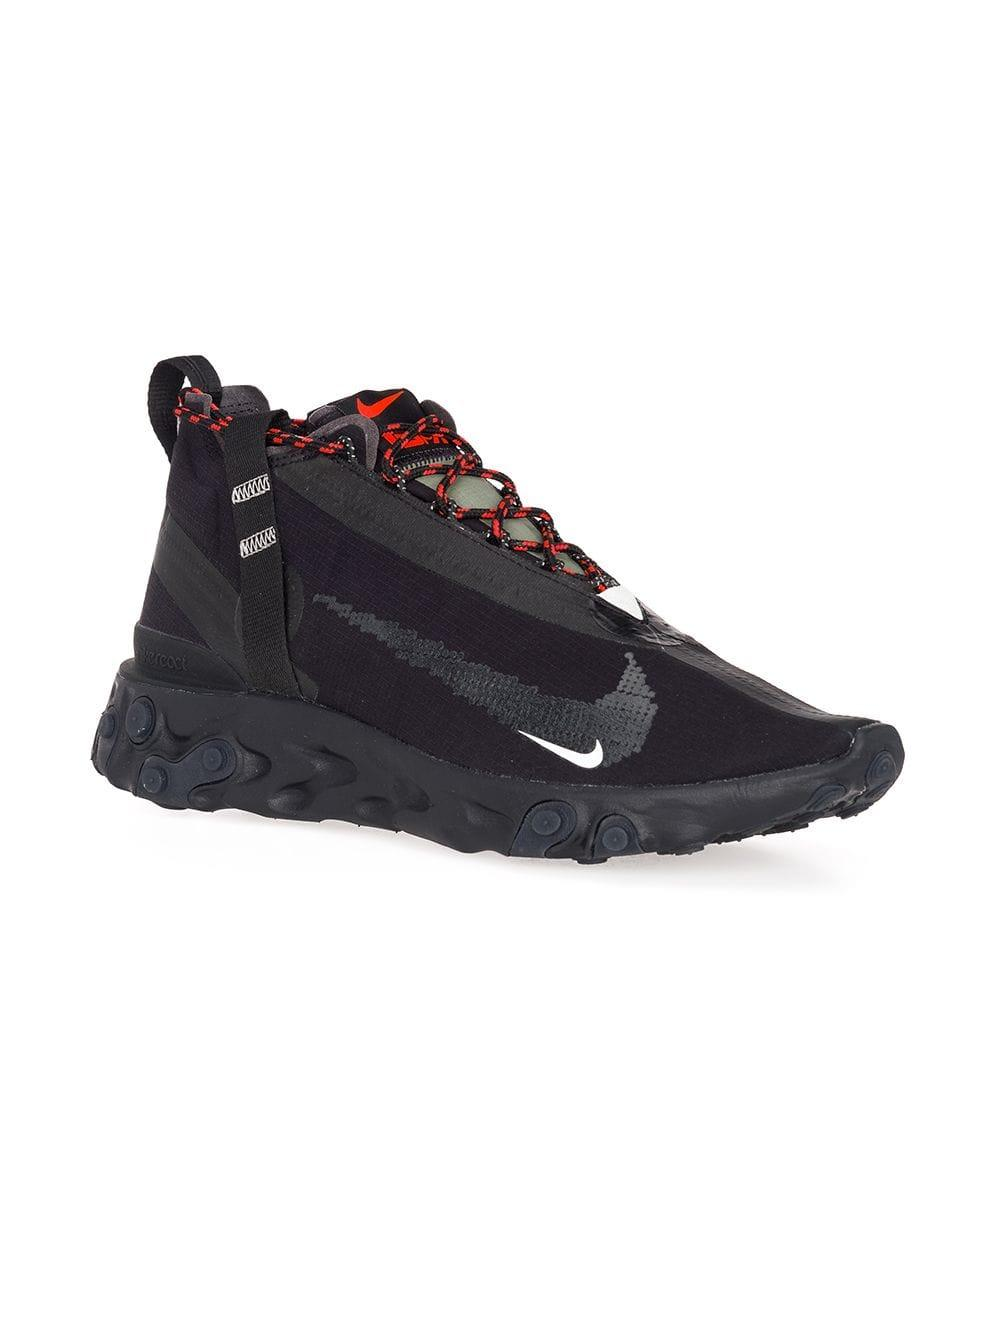 on sale 160f0 ba7ab Nike Black And Red State Emergency React Sneakers in Black for Men - Lyst